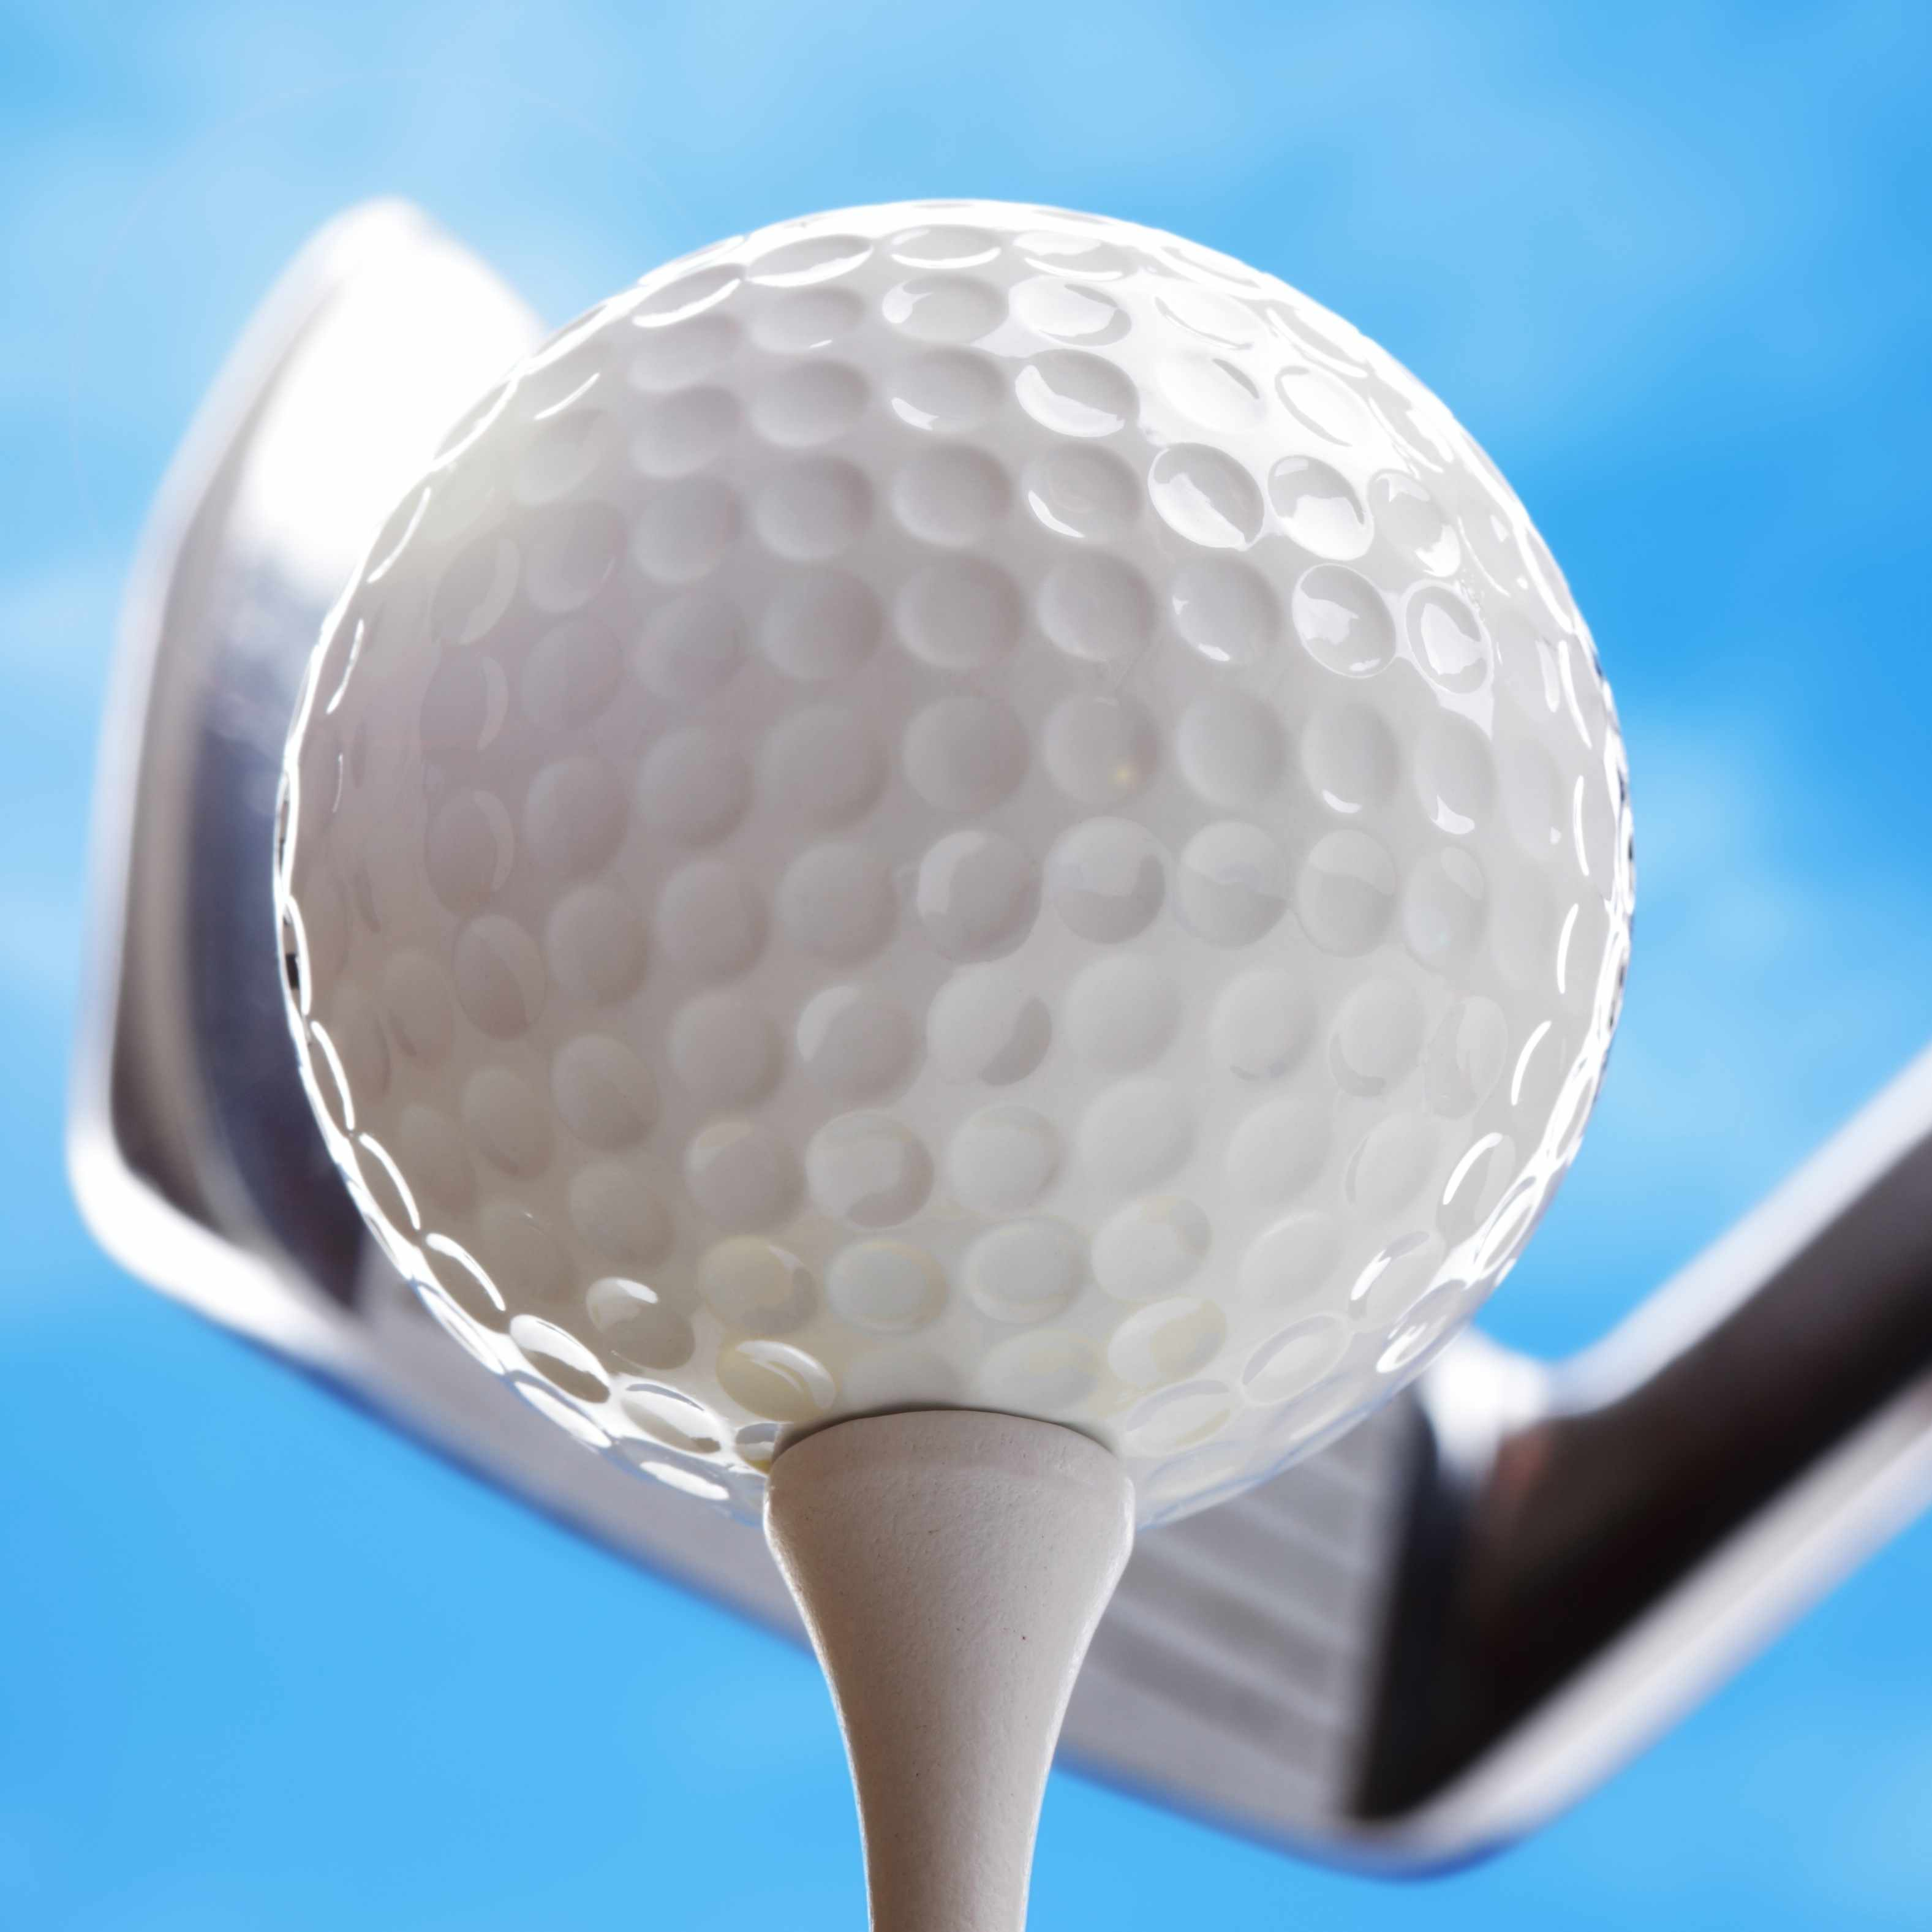 golf club and golf ball with blue sky background